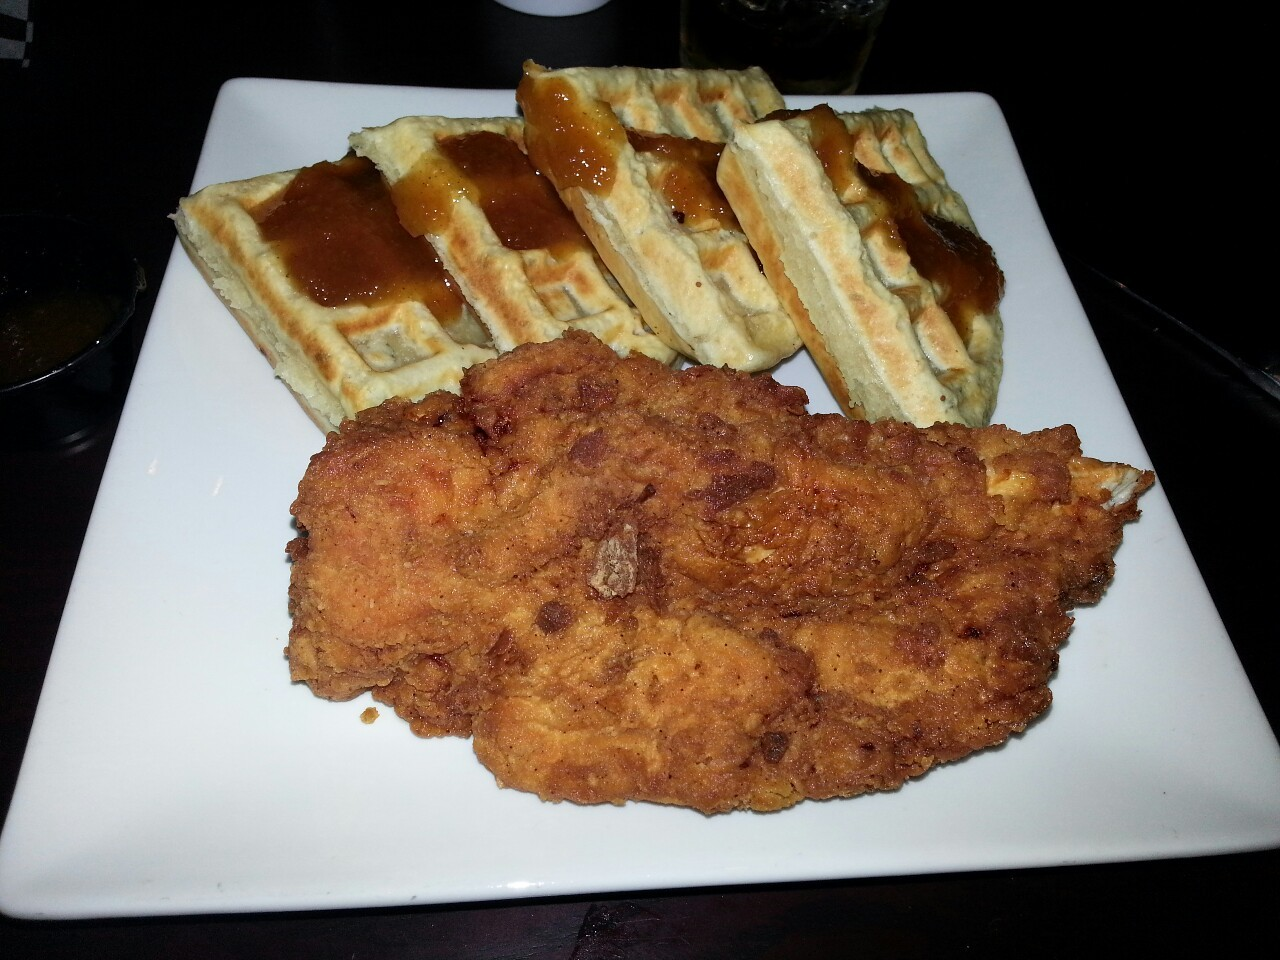 Chicken and waffles for the 1st time